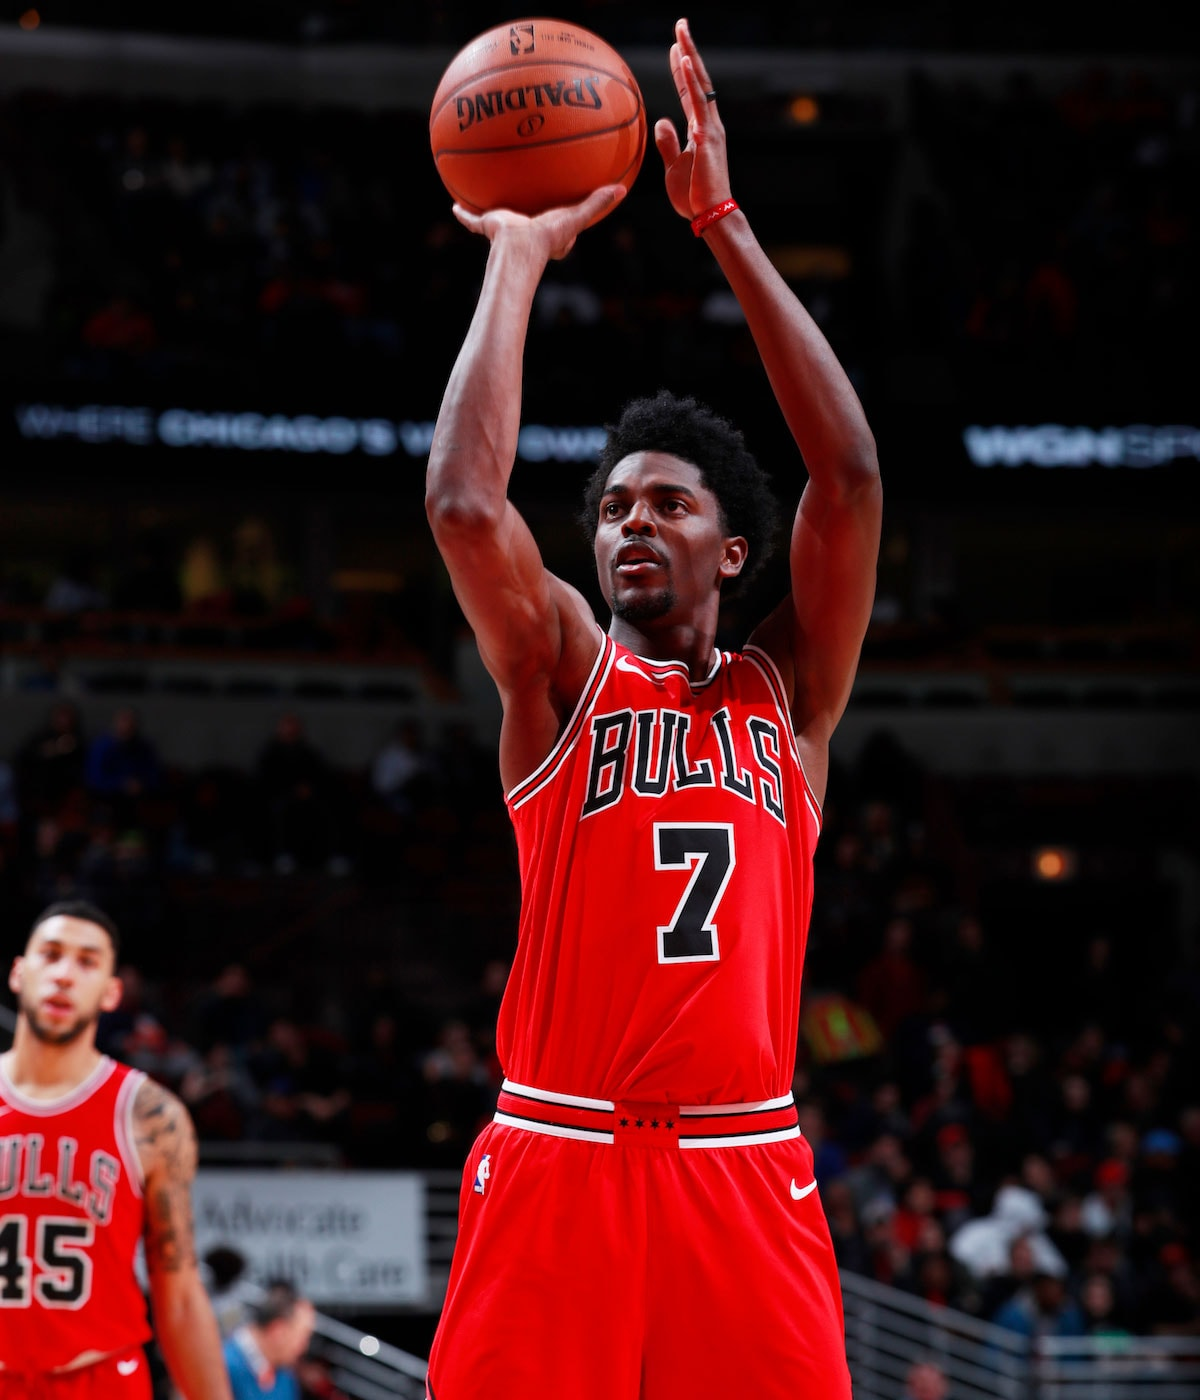 Justin Holiday #7 of the Chicago Bulls shoots a free throw against the Cleveland Cavaliers on December 4, 2017 at the United Center in Chicago, Illinois.